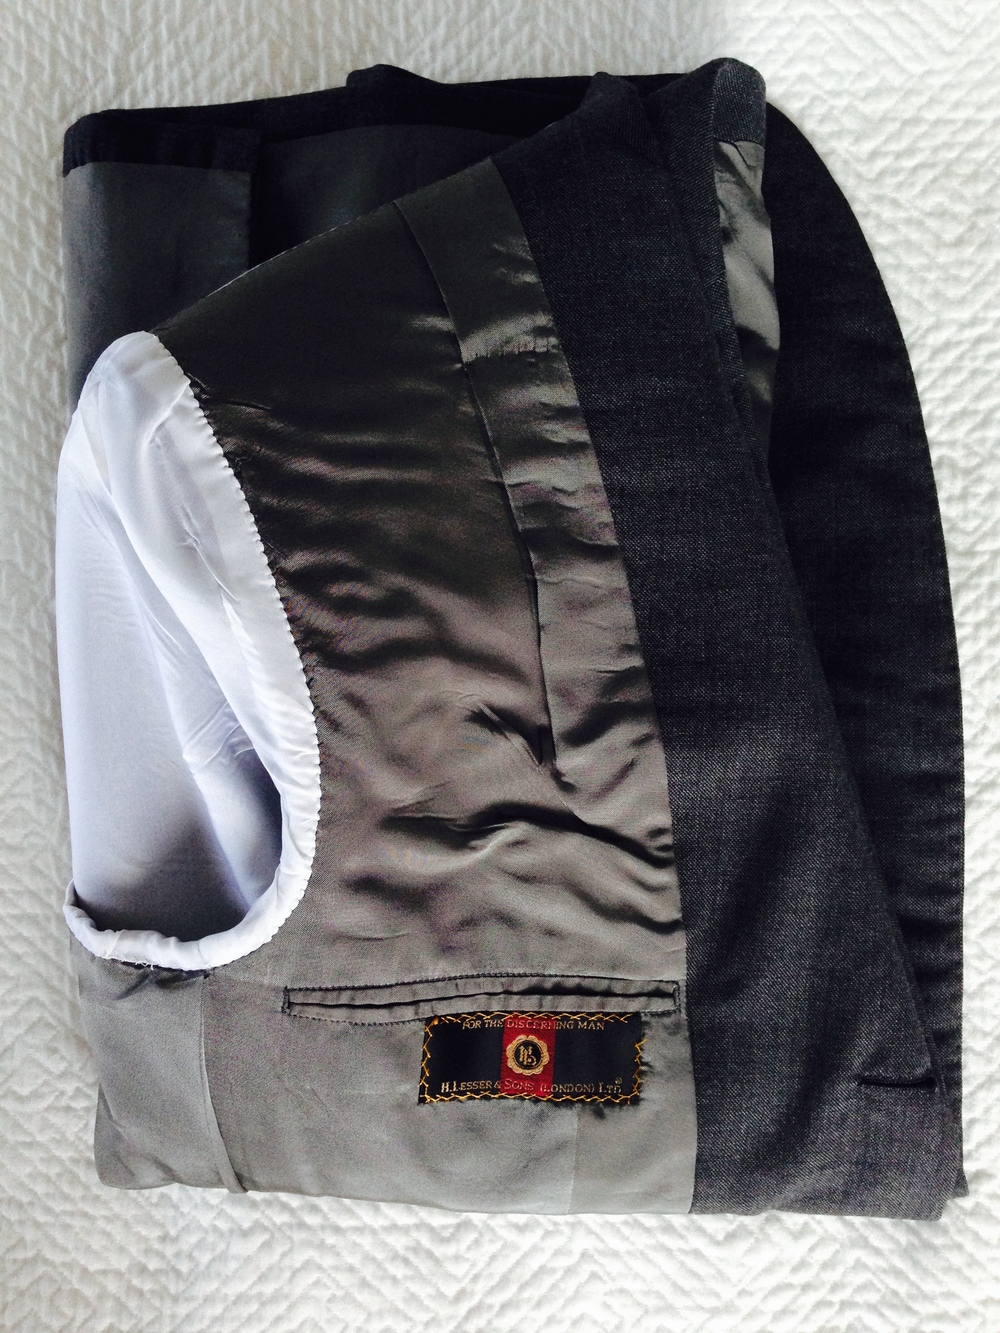 A jacket neatly inverted and folded.